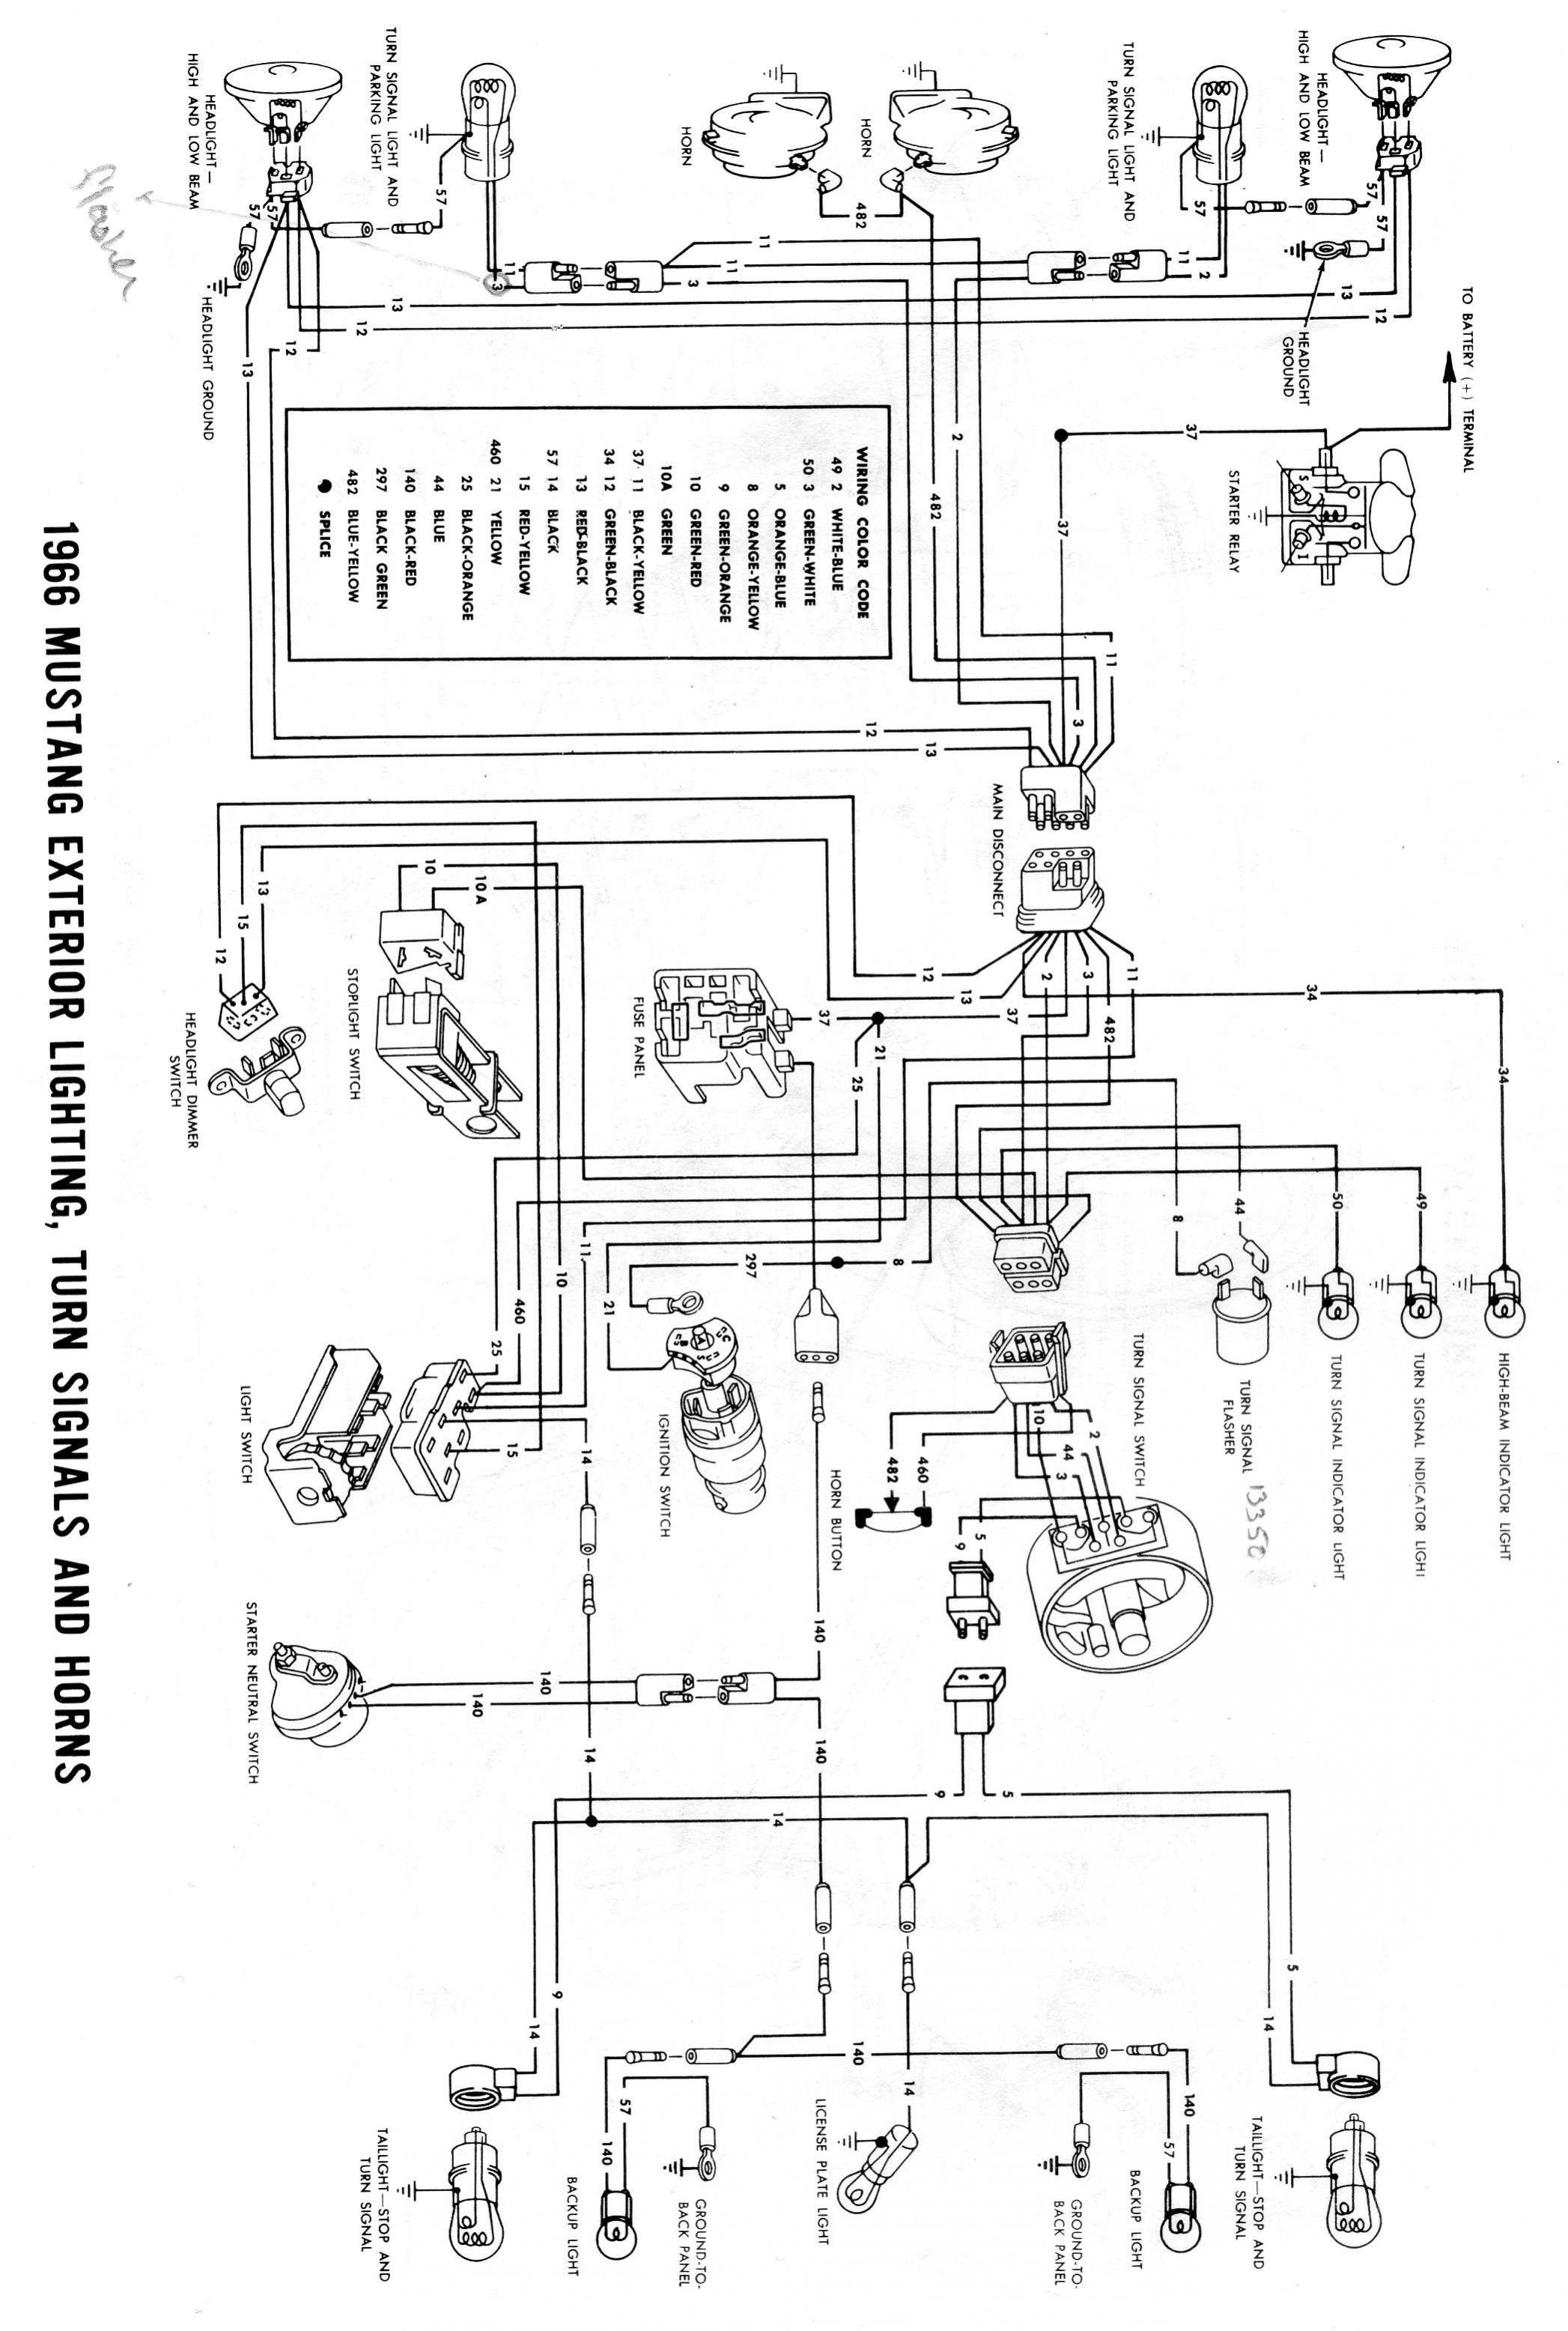 New Wiring Diagram For Emergency Key Switch Diagram